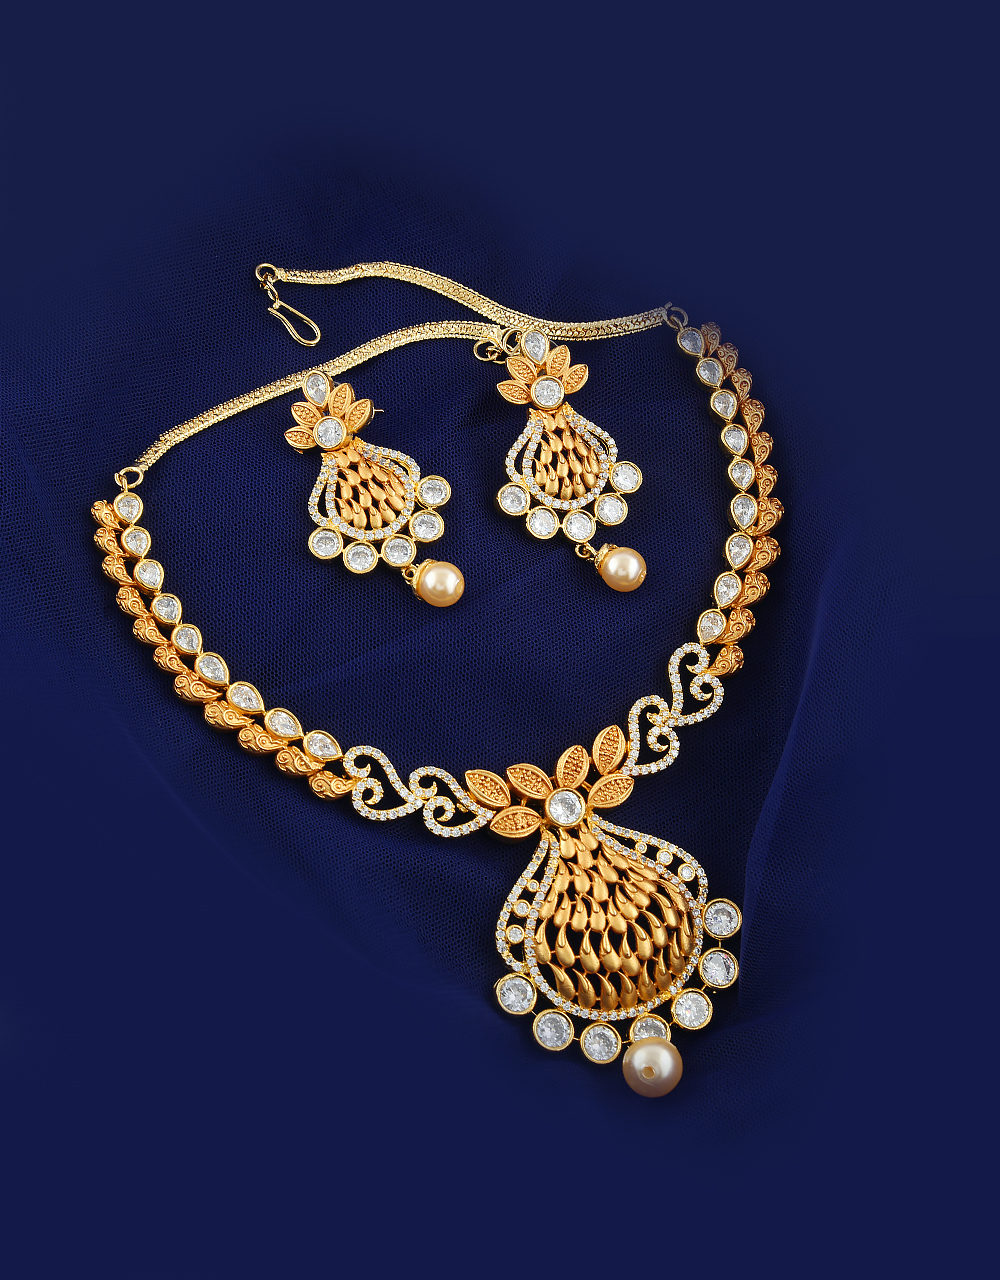 Gold Finish Stylish Diamond Necklace Studded With Pearl Beads Ladies Diamond Necklace